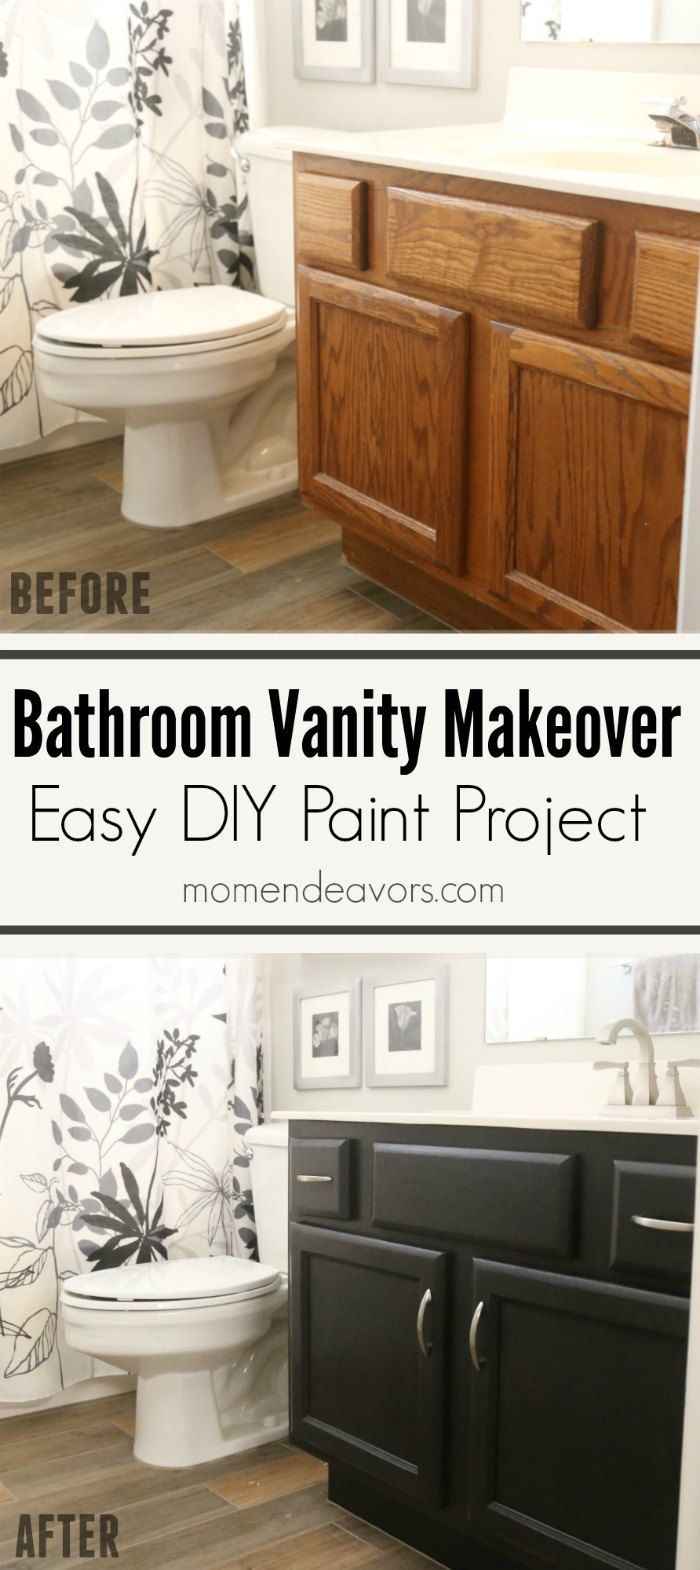 painting bathroom cabinets color ideas pin by endeavors on diy home decor 23931